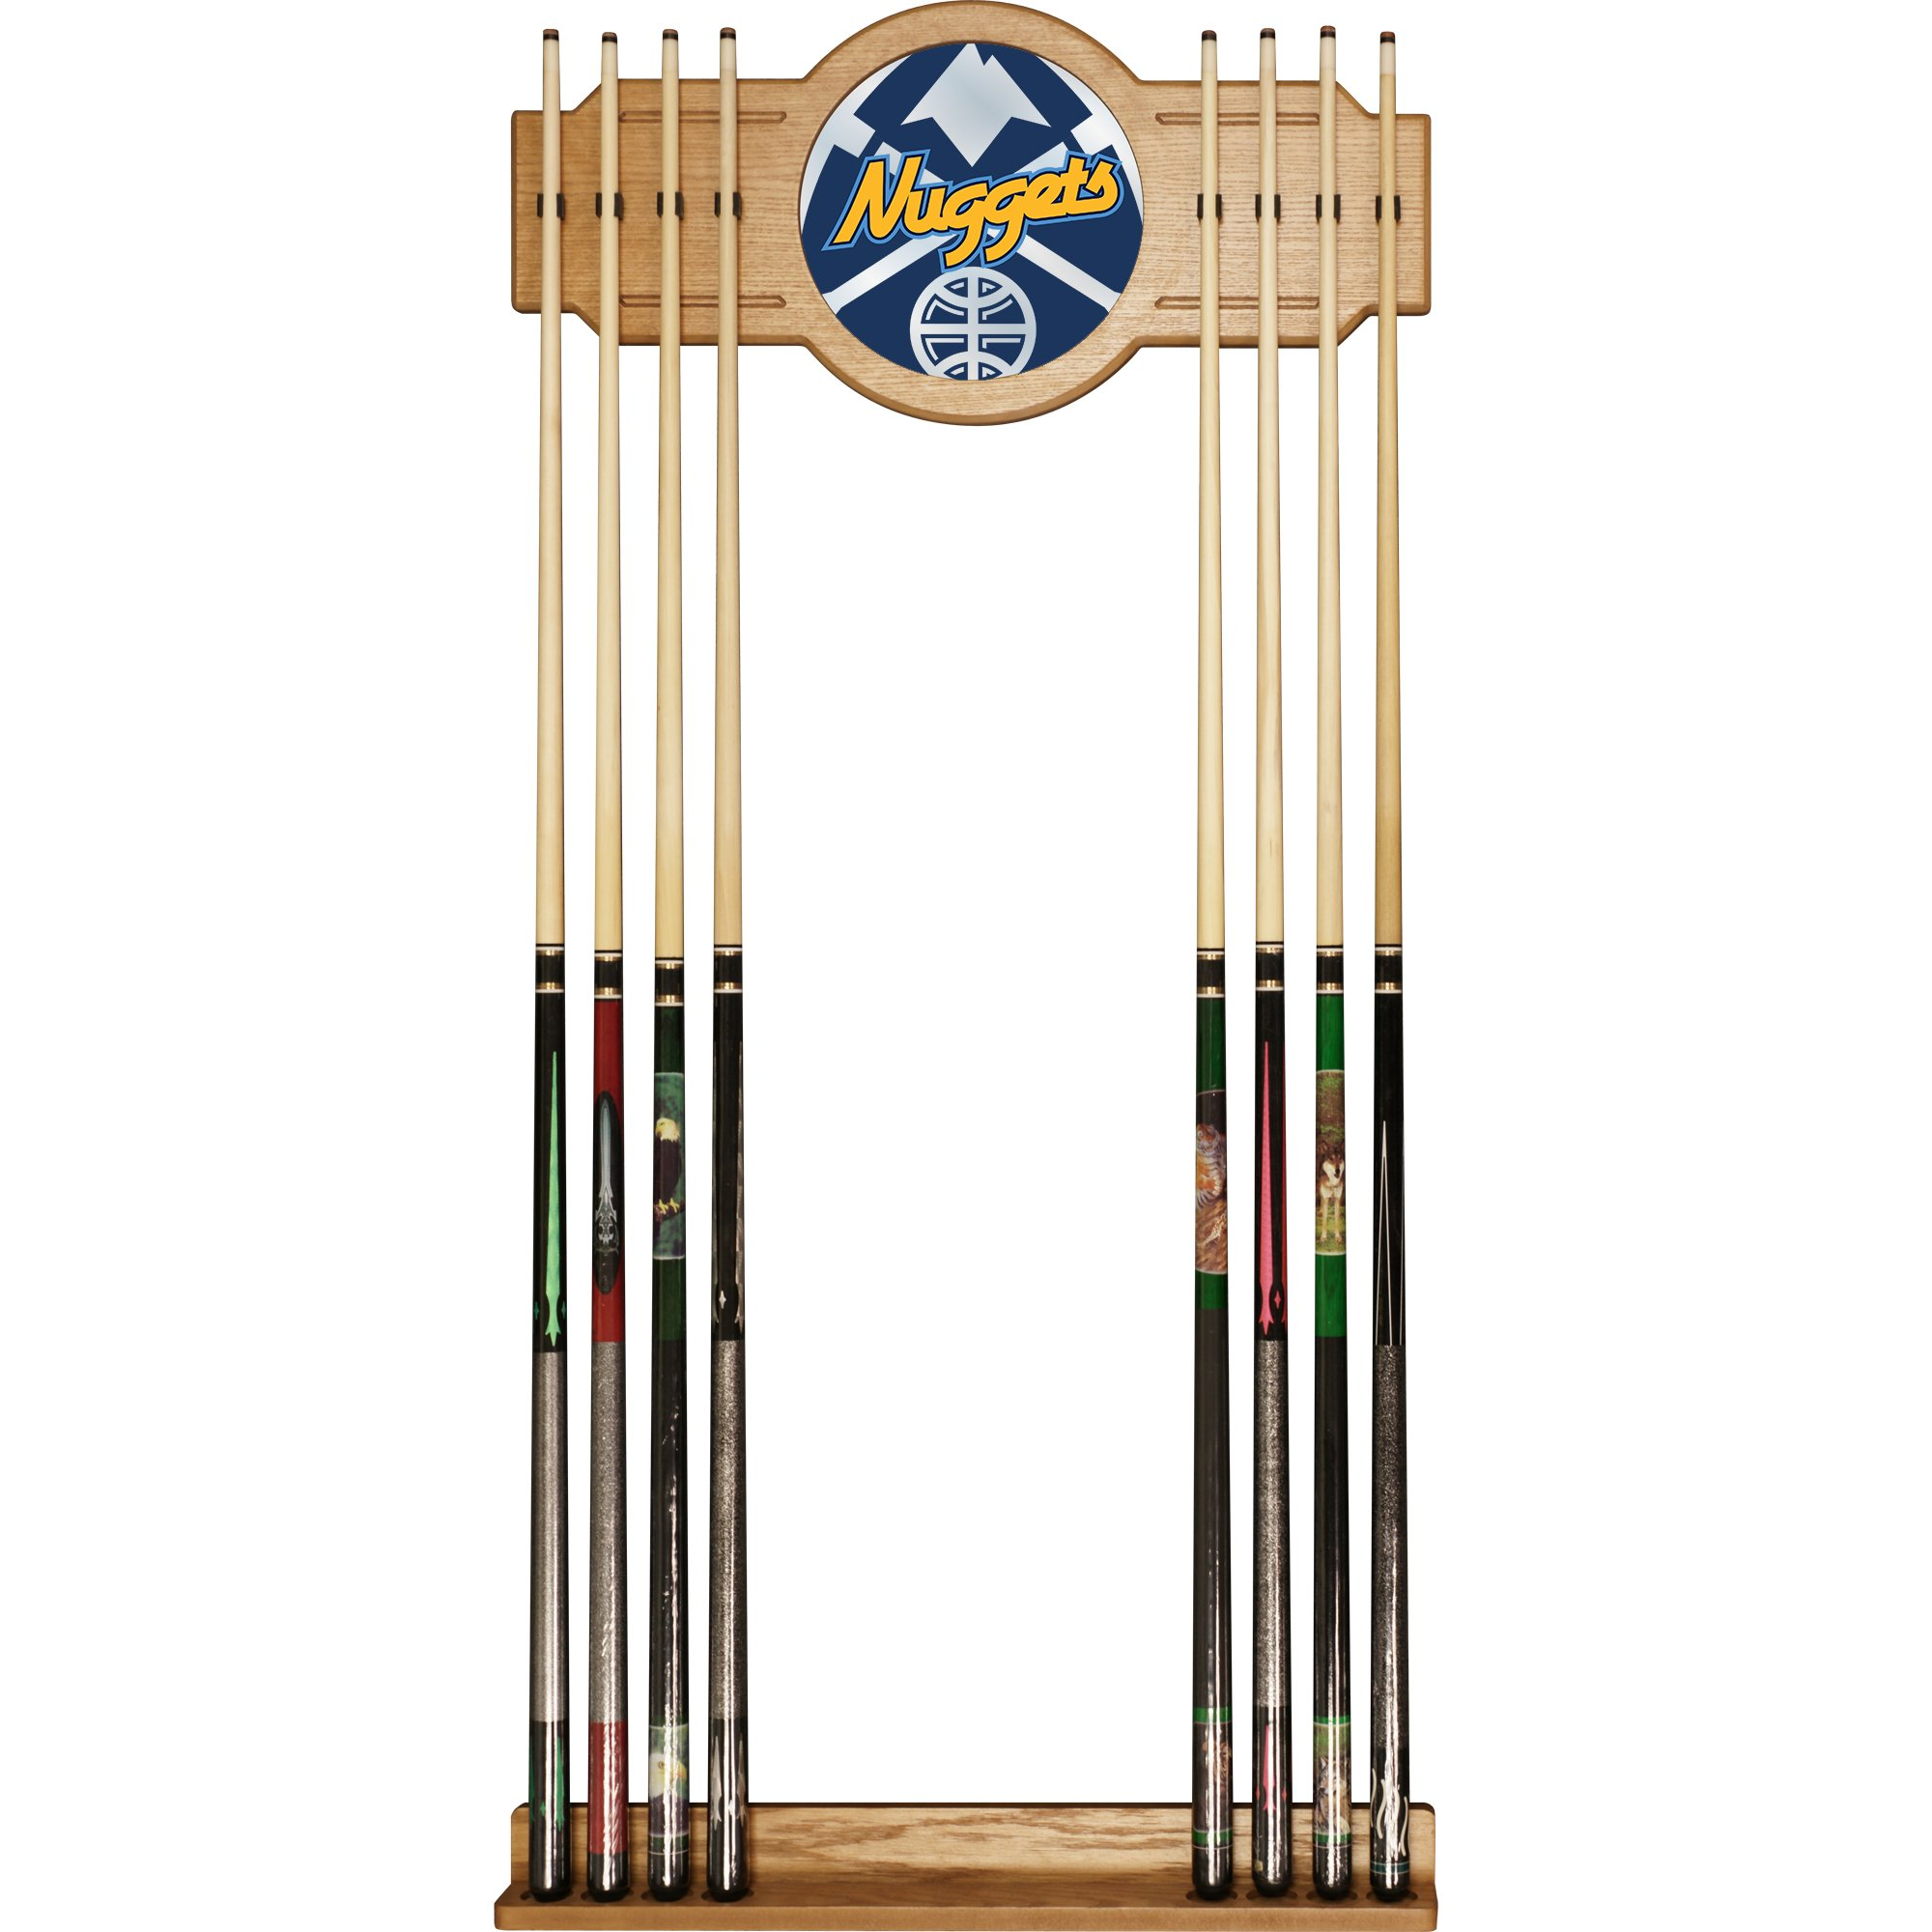 Trademark Gameroom NBA6000-CH2 NBA Cue Rack with Mirror - Fade - Charlotte Hornets by Trademark Global